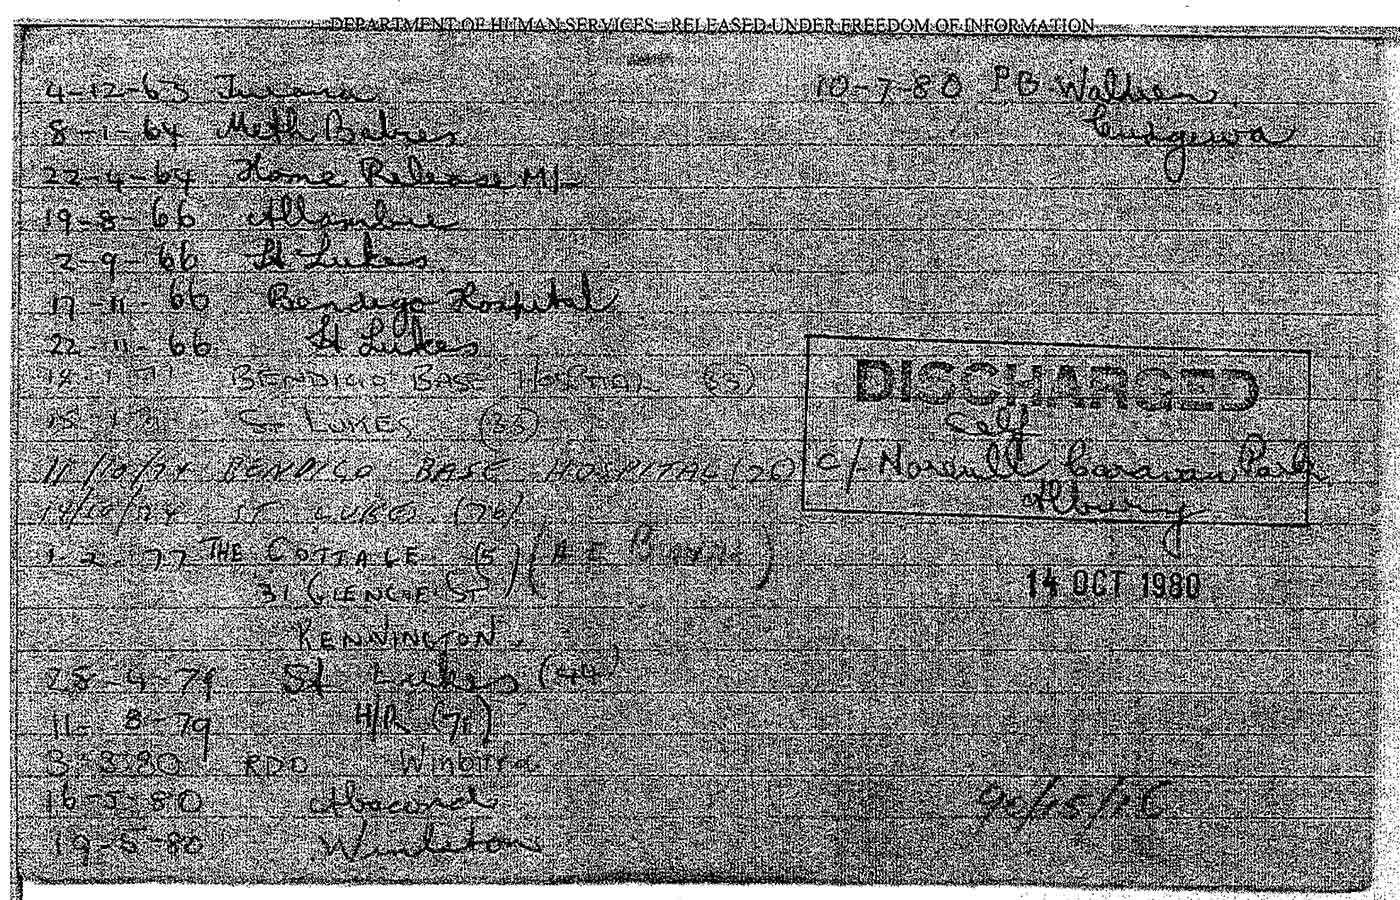 Photocopy of a lined page listing dates and names of various institutions from 1963 to 1980. 'DISCHARGED' is also printed on the page. - click to view larger image